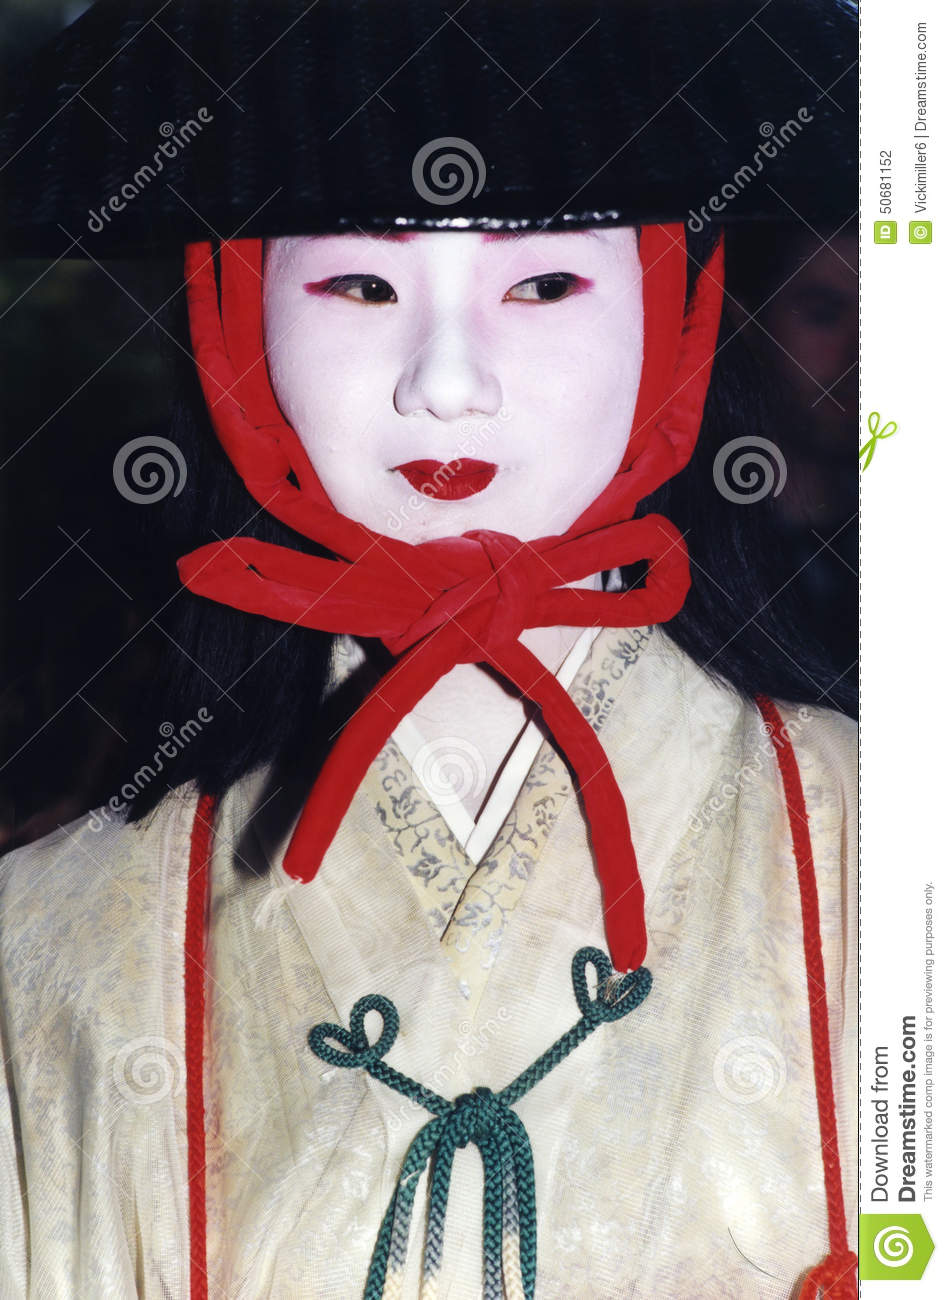 bbe79f9316 Japanese woman in costume and makeup for the Jidai Matsuri festival in  Kyoto Japan